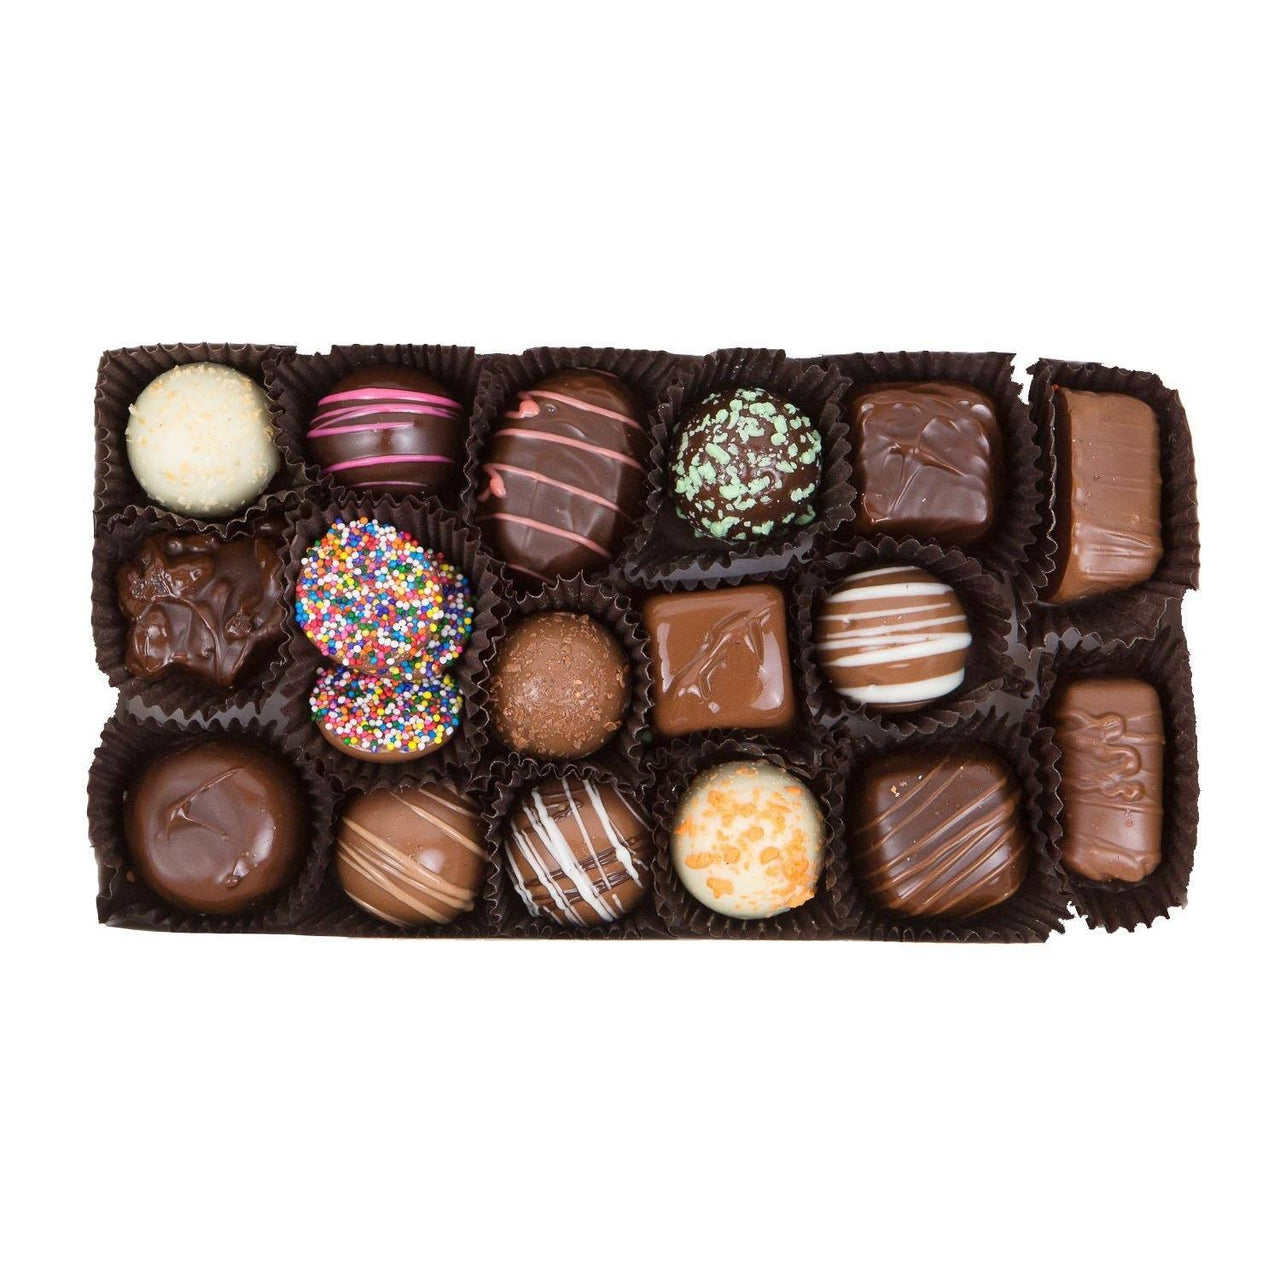 Last Minute Christmas Gifts  - Chocolate Assortment Gift Box - Jackie's Chocolate (4336485531763)